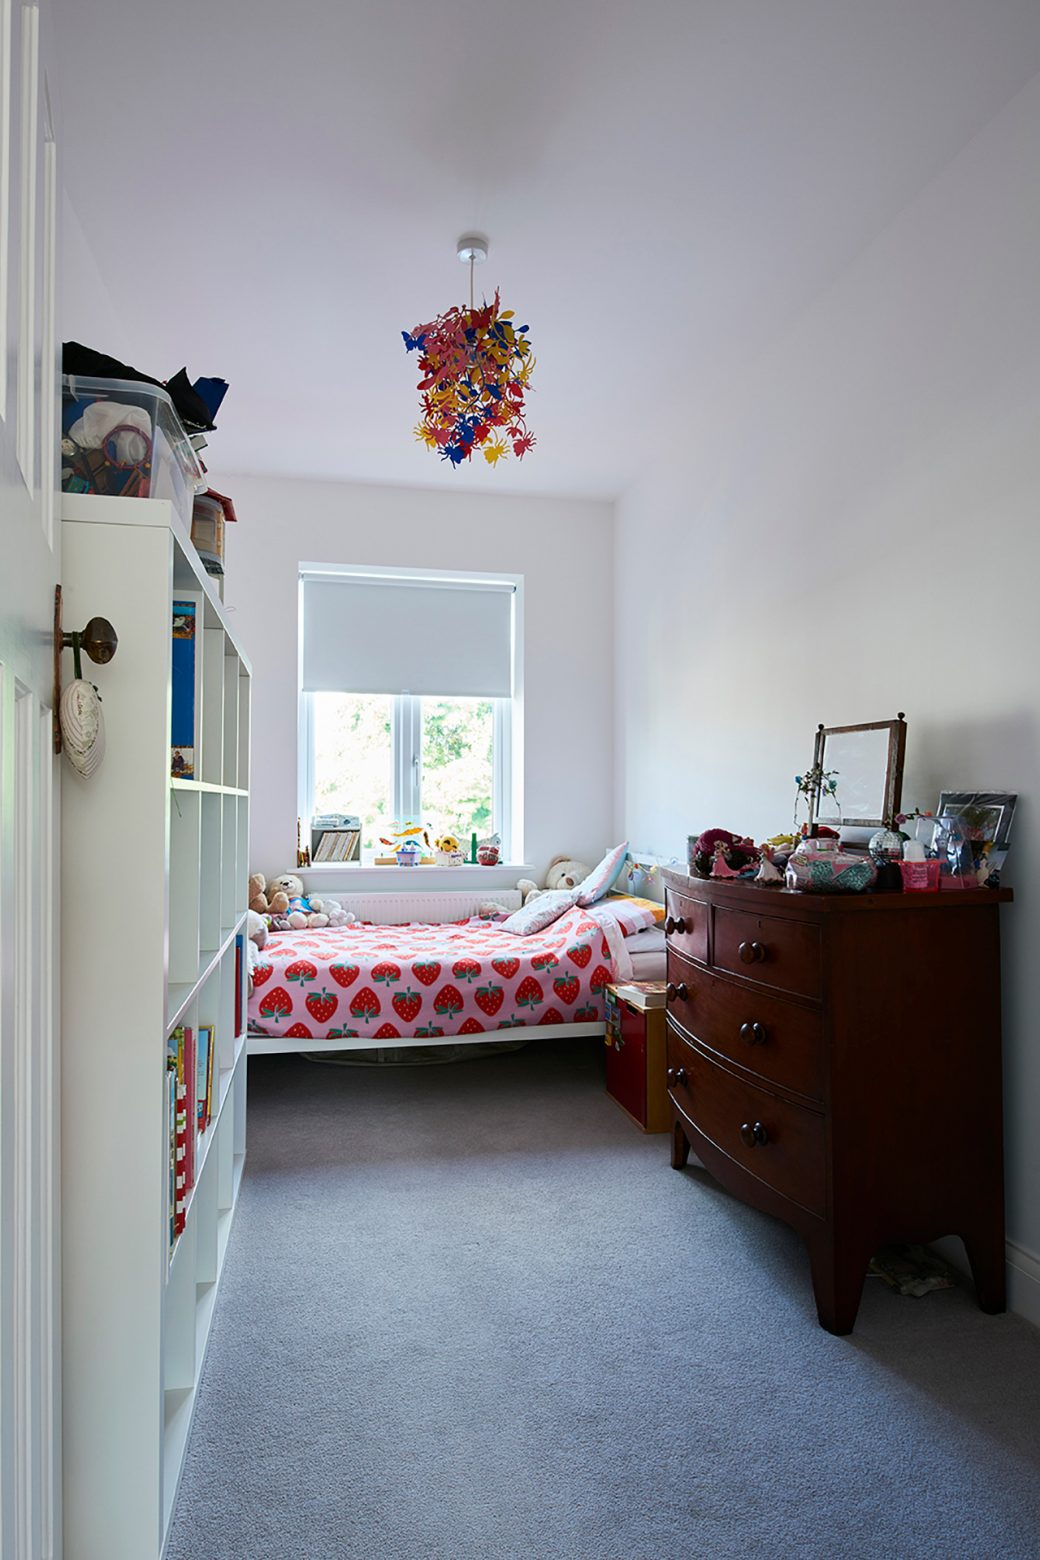 Kids bedroom with storage and fitted carpet